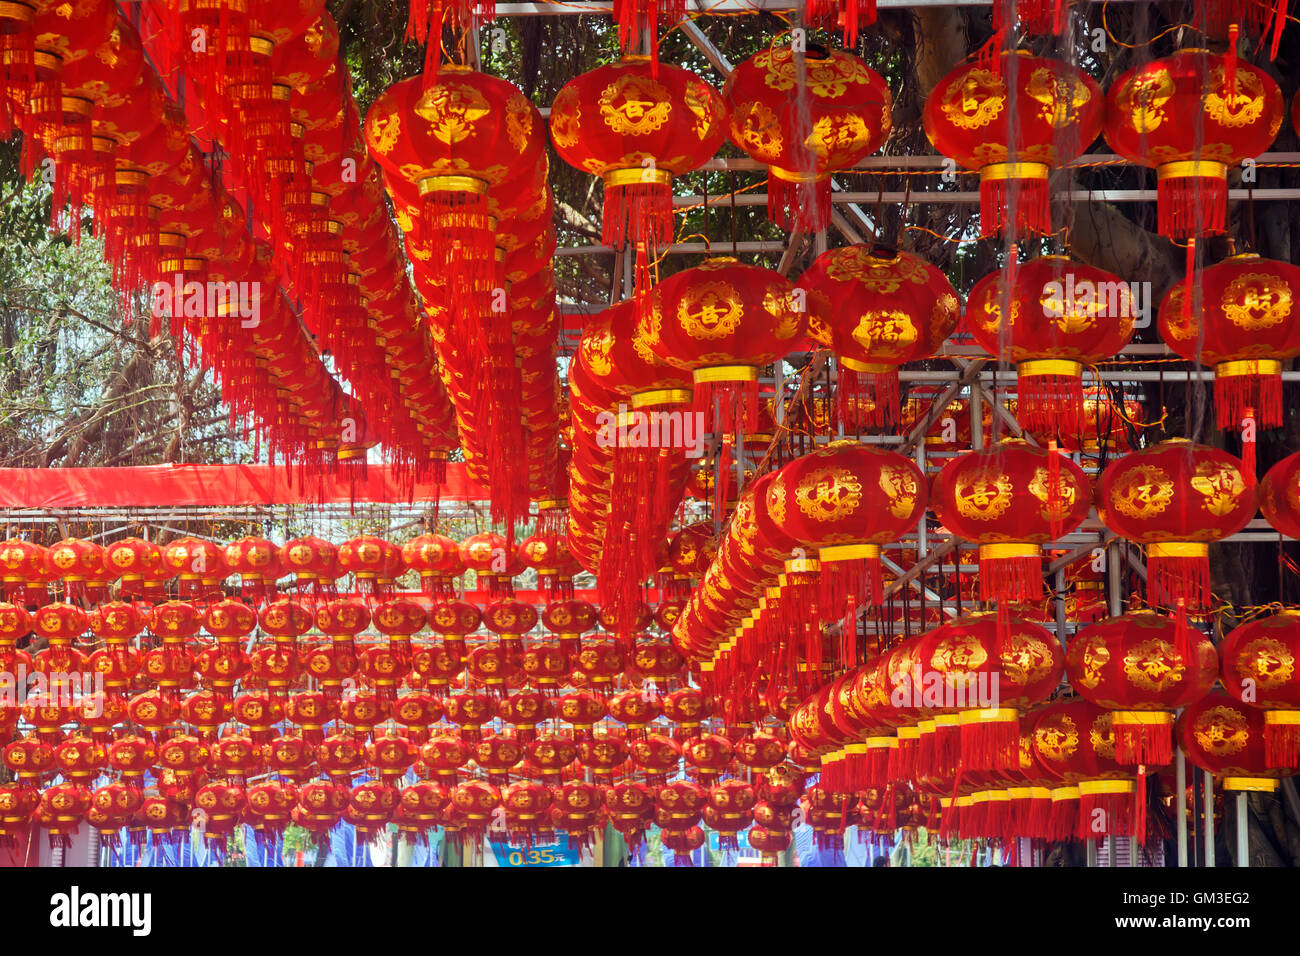 Chinese New Year red lanterns hanging high above Stock Photo